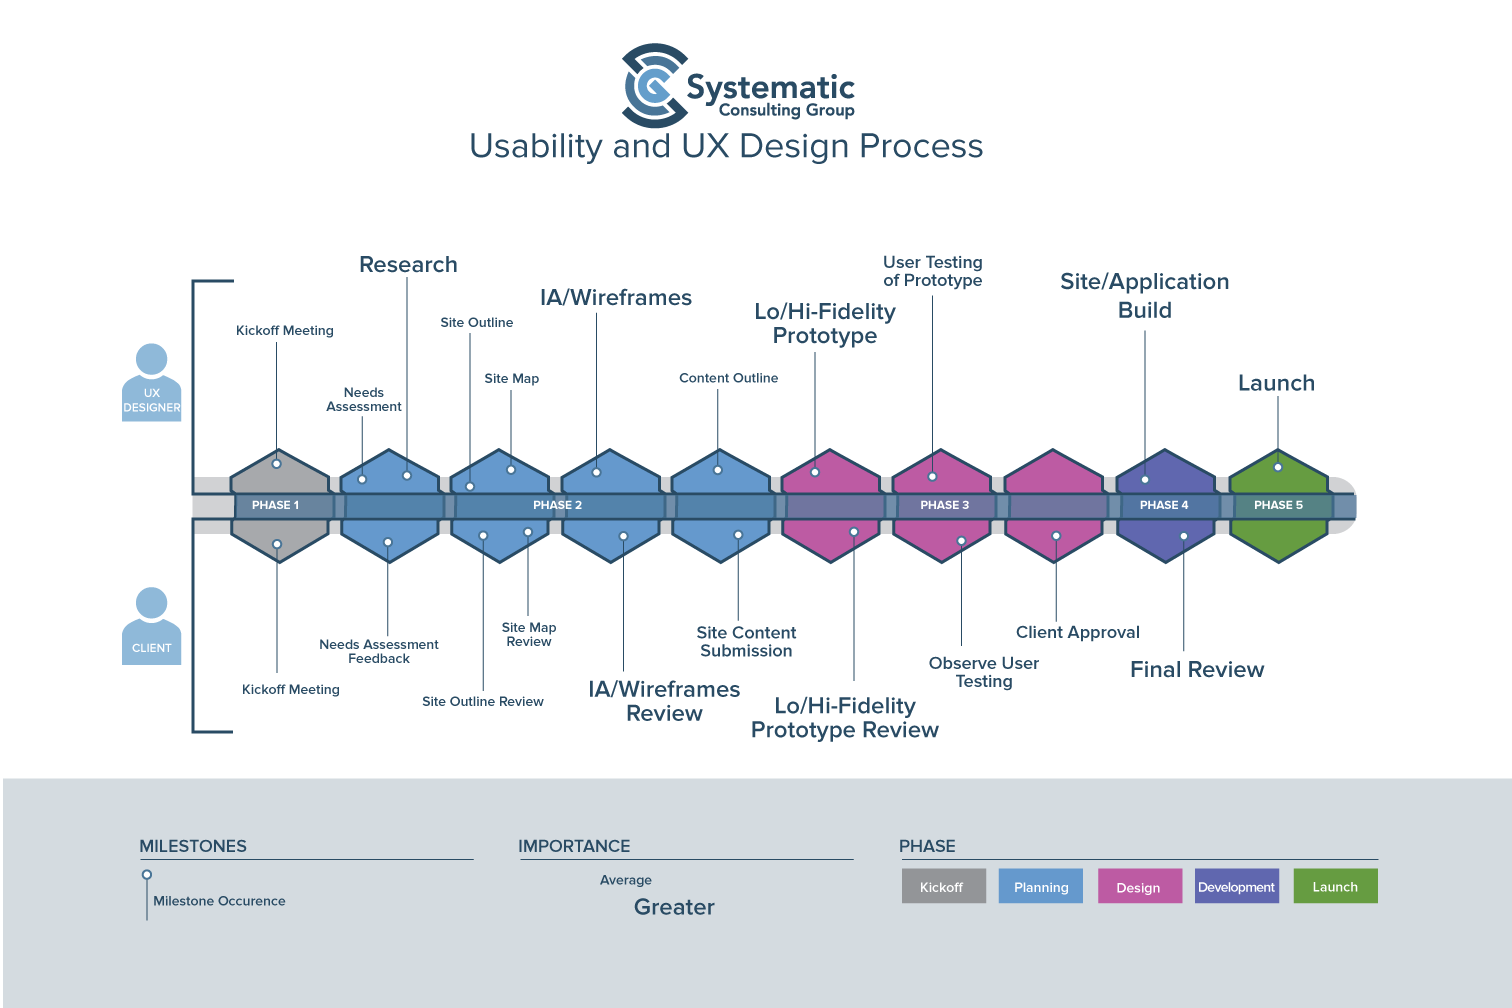 Usability user experience design systematic consulting for Experience design consultant